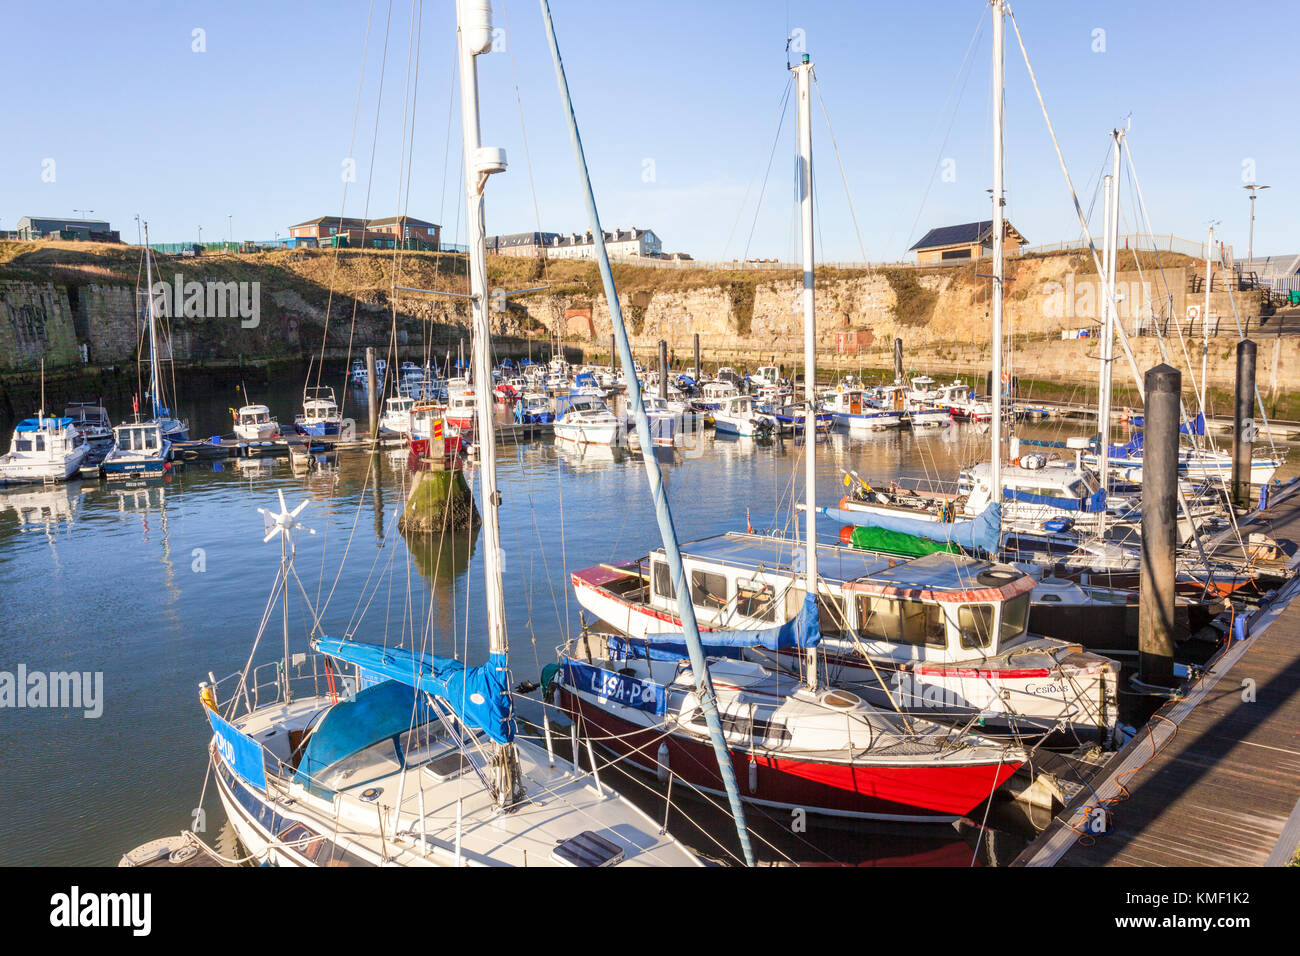 Boats in the marina at Seaham harbour, Durham UK - Stock Image